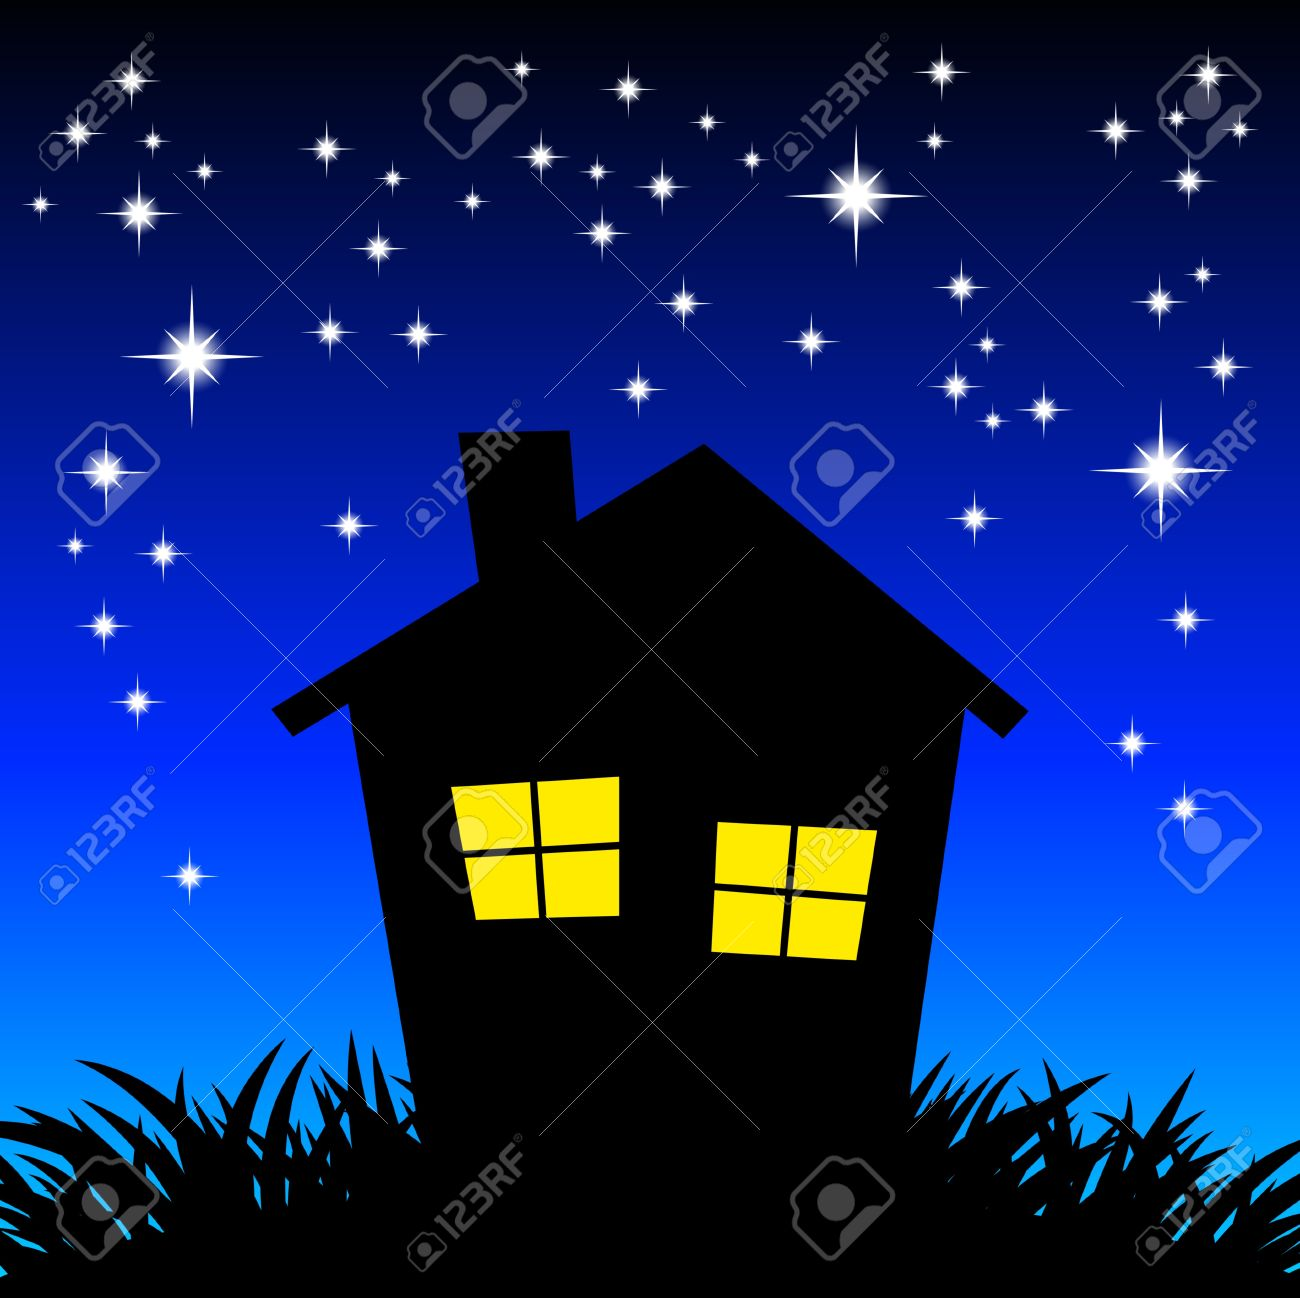 night clipart clipground Gray and Blue Stars Sky Gray and Blue Stars Sky